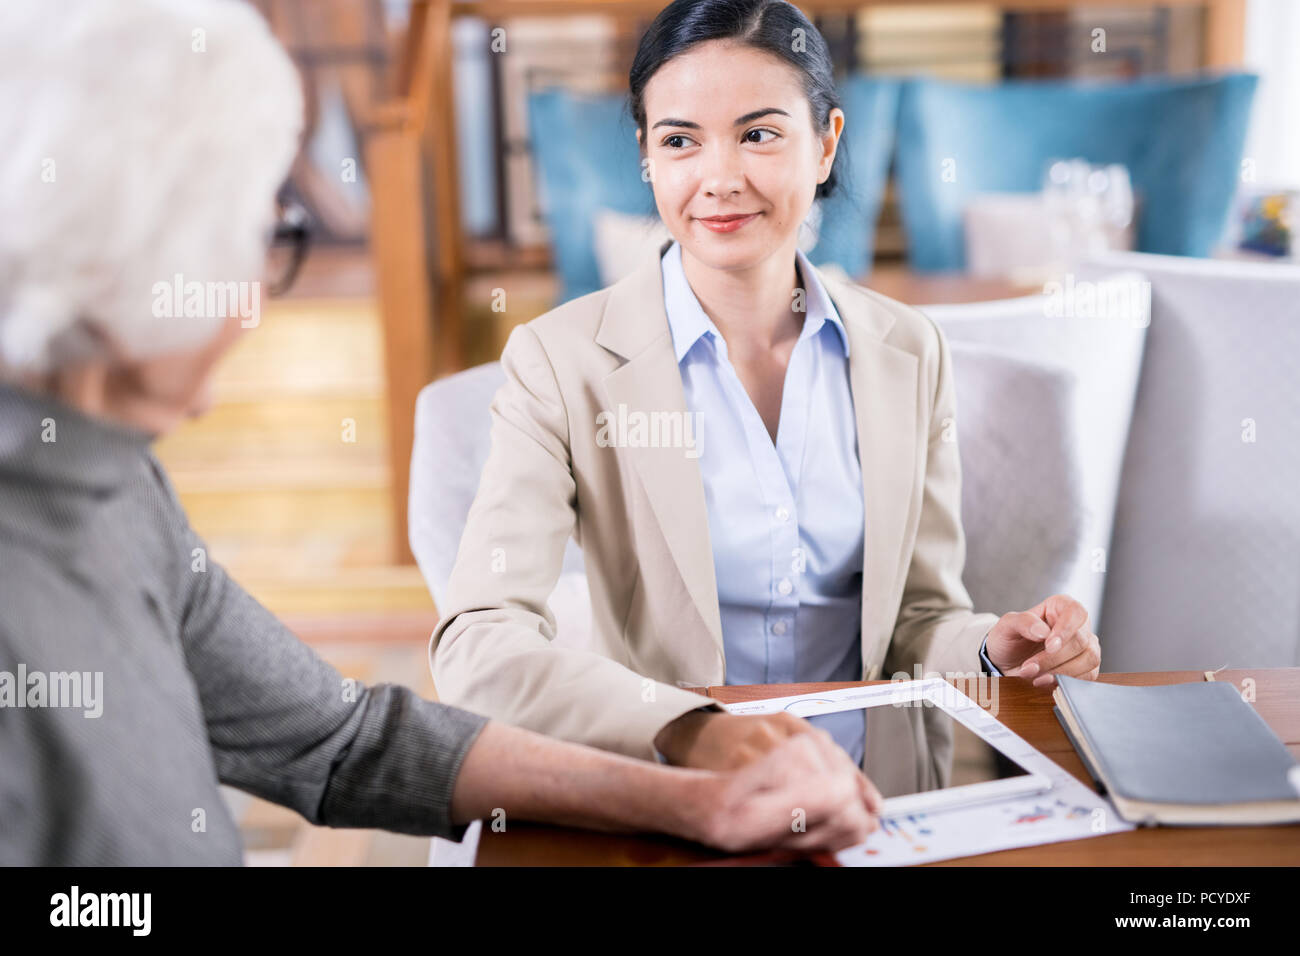 Insurance agent at work - Stock Image